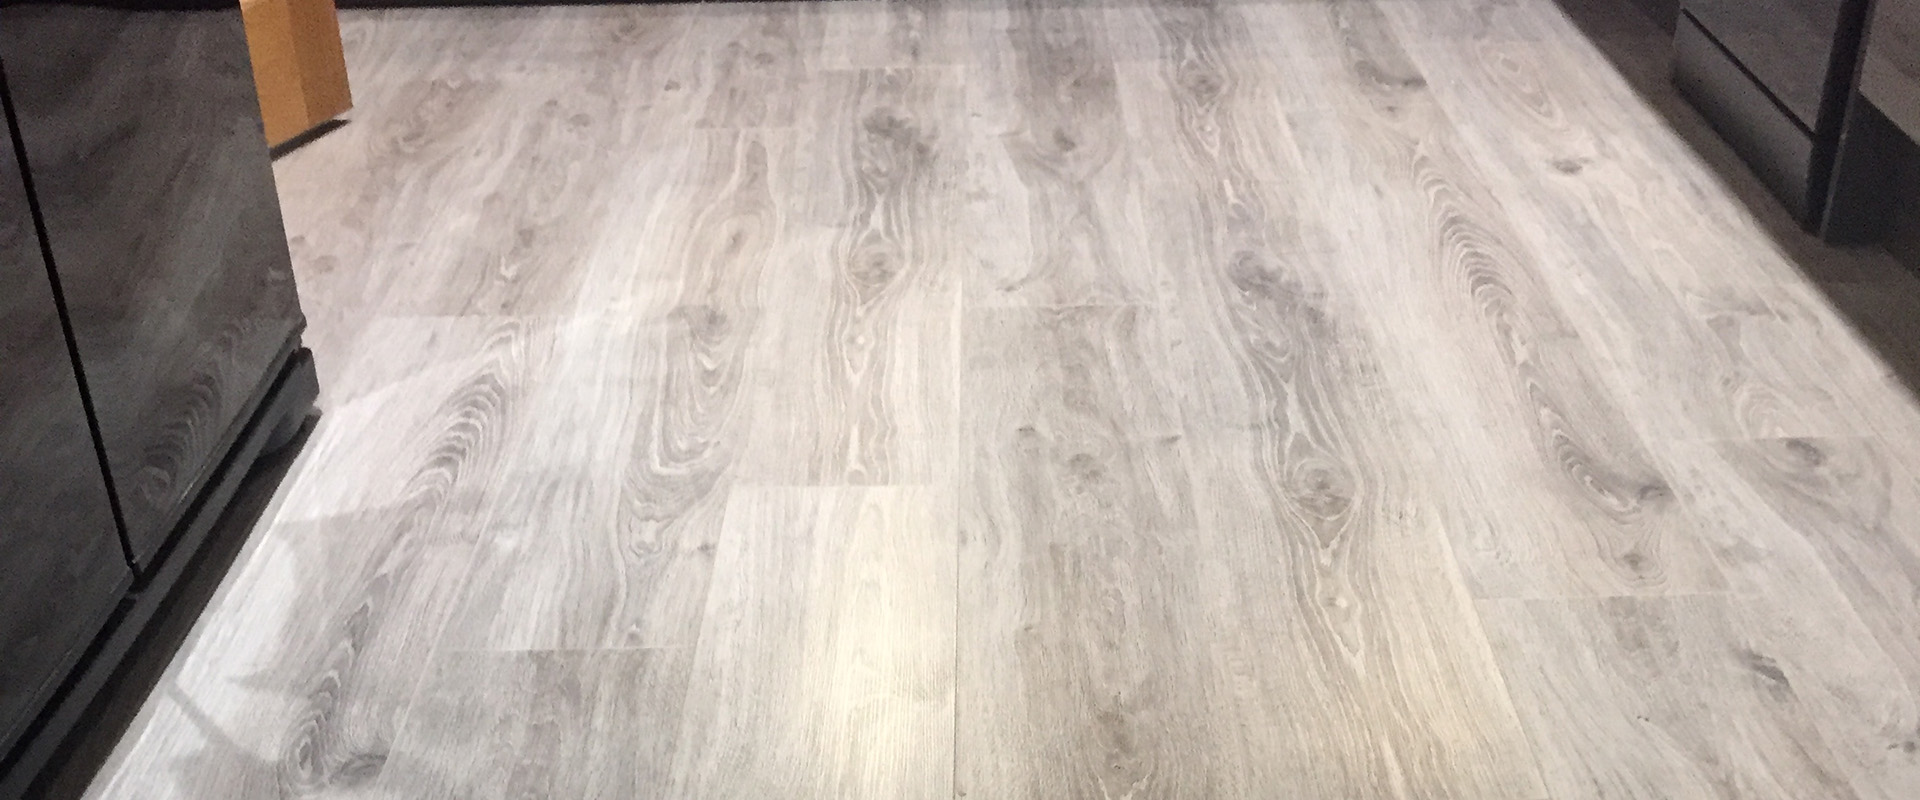 Grey oak effect laminate flooring